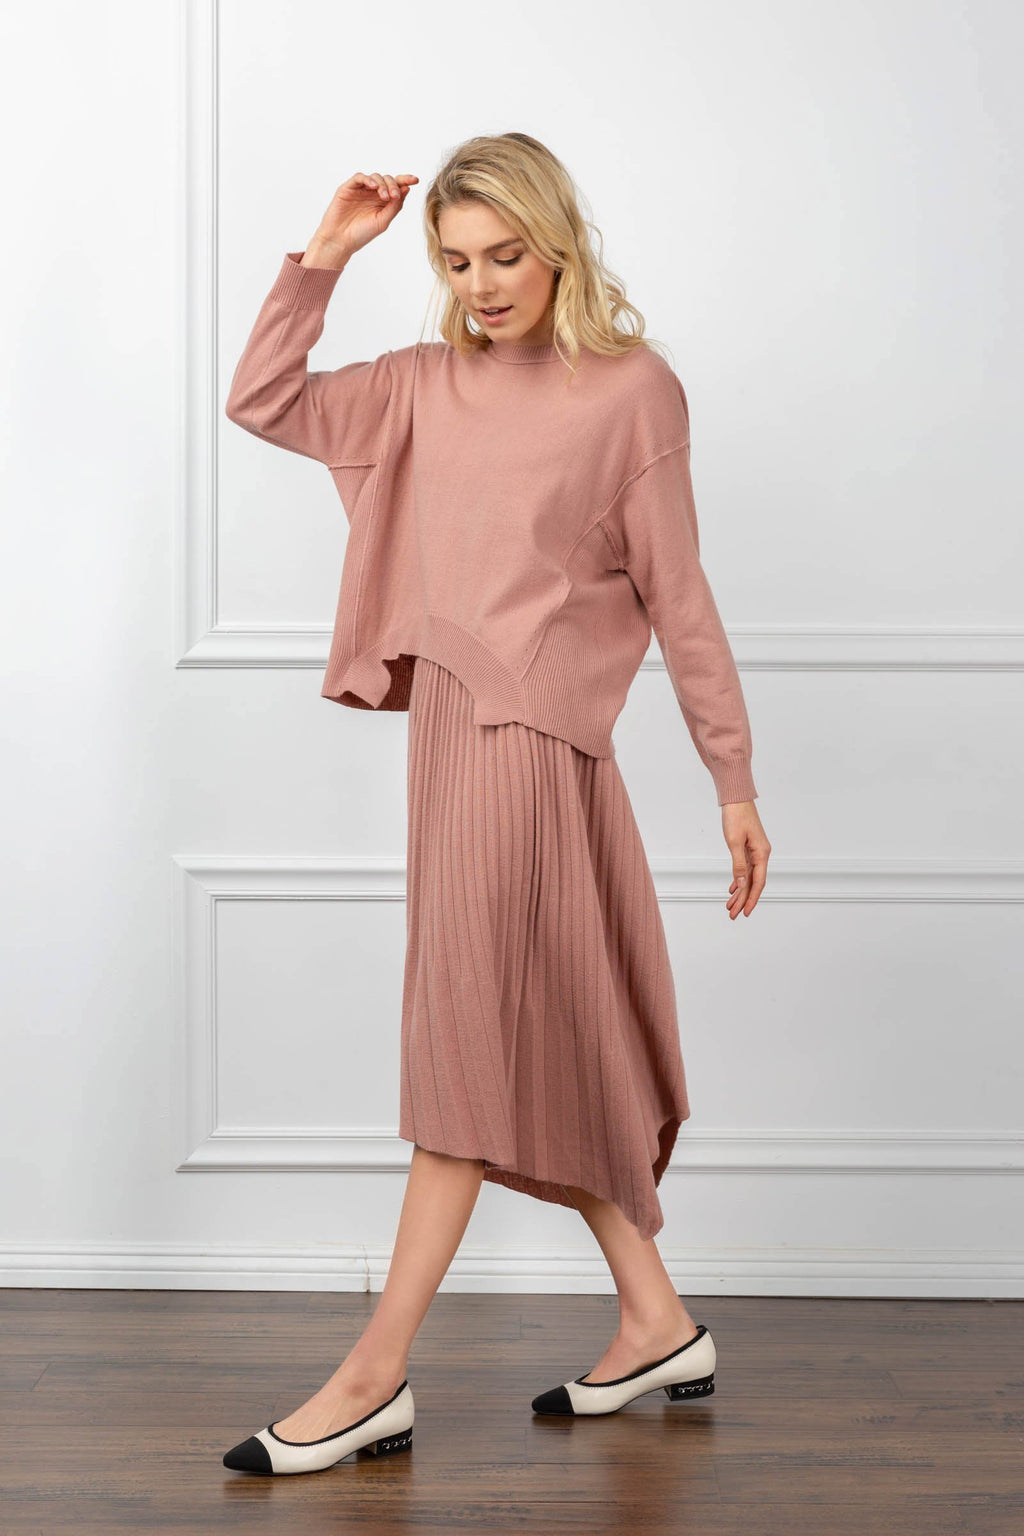 Maxine Knit Set Pink in Tops by J.ING - an L.A based women's fashion line